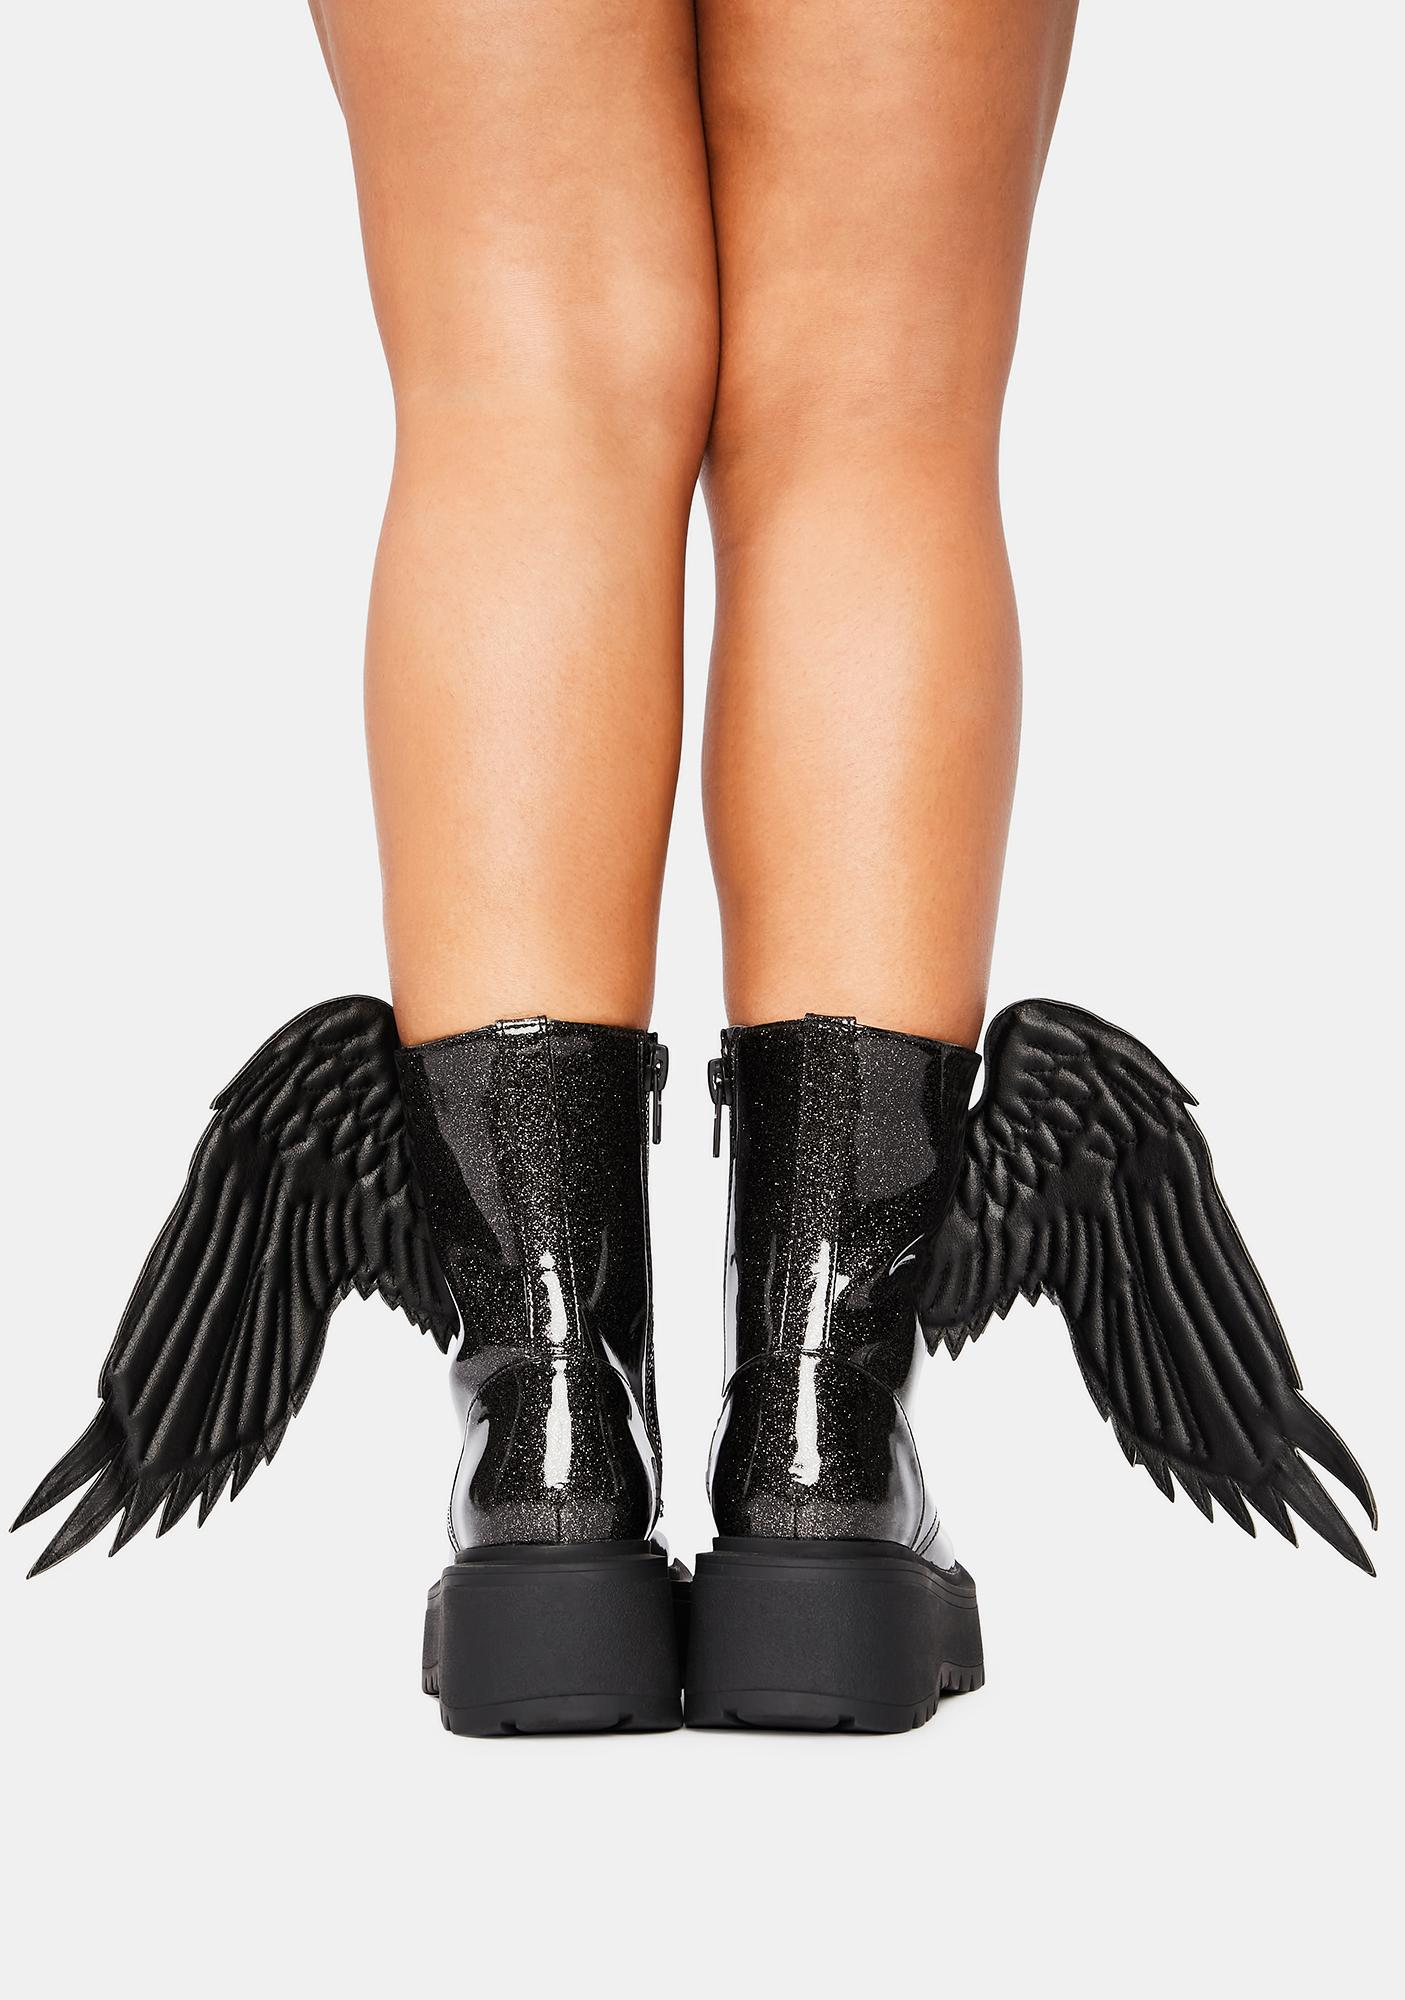 Trickz & Treatz Angel Of Darkness Winged Boots